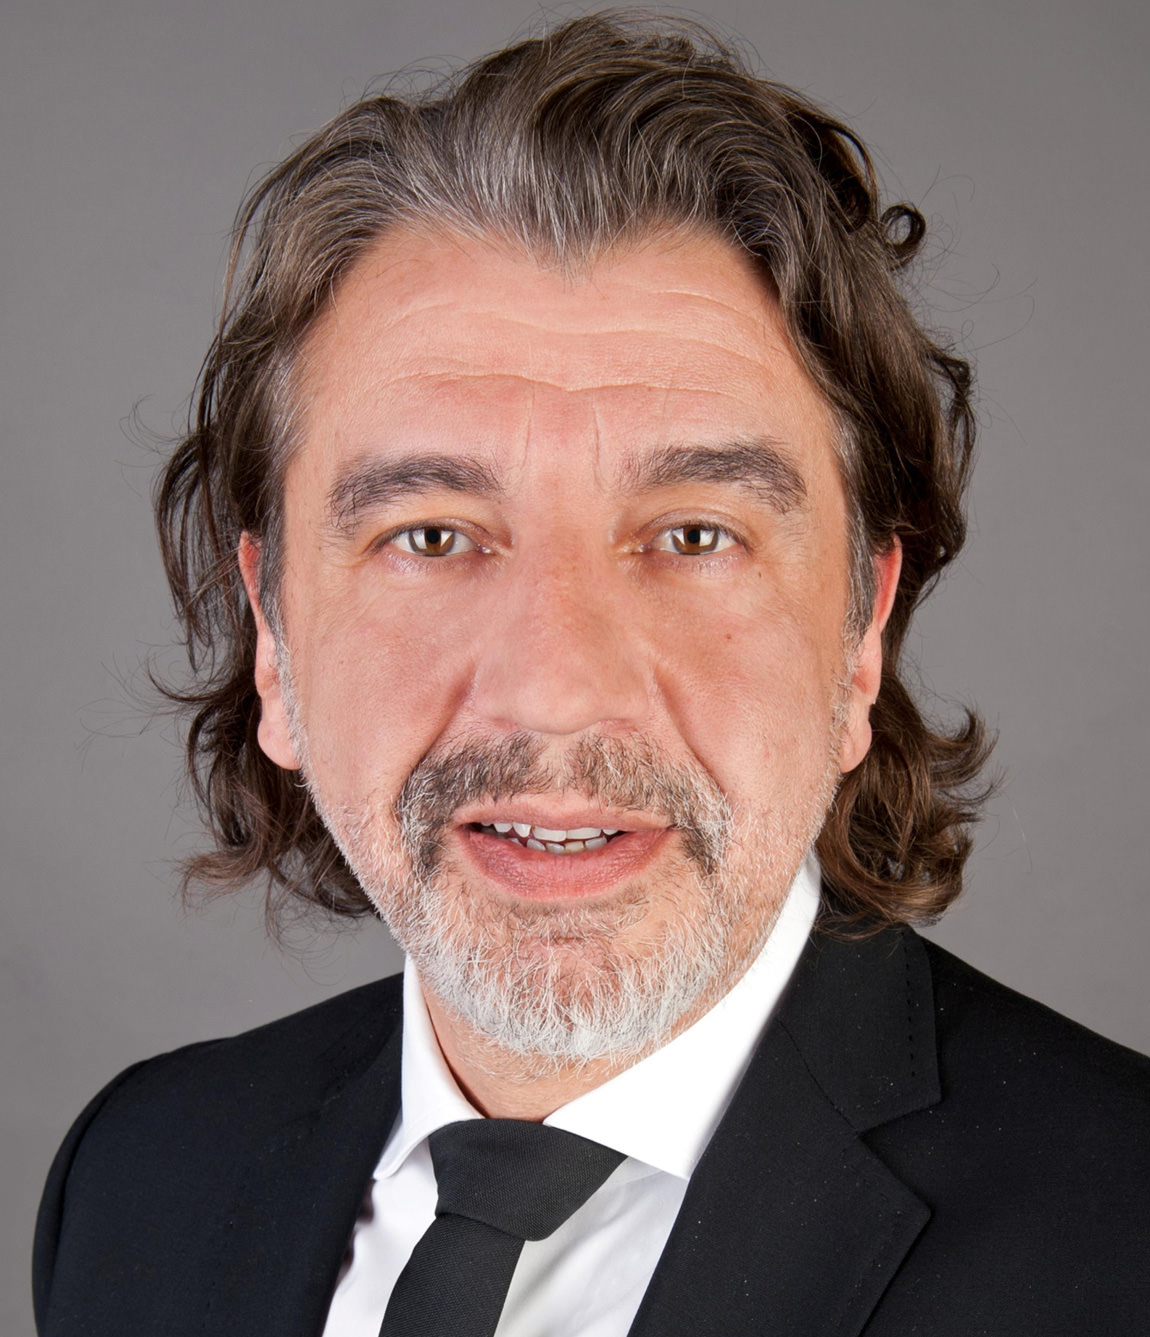 Mauro Grossi, Group CFO